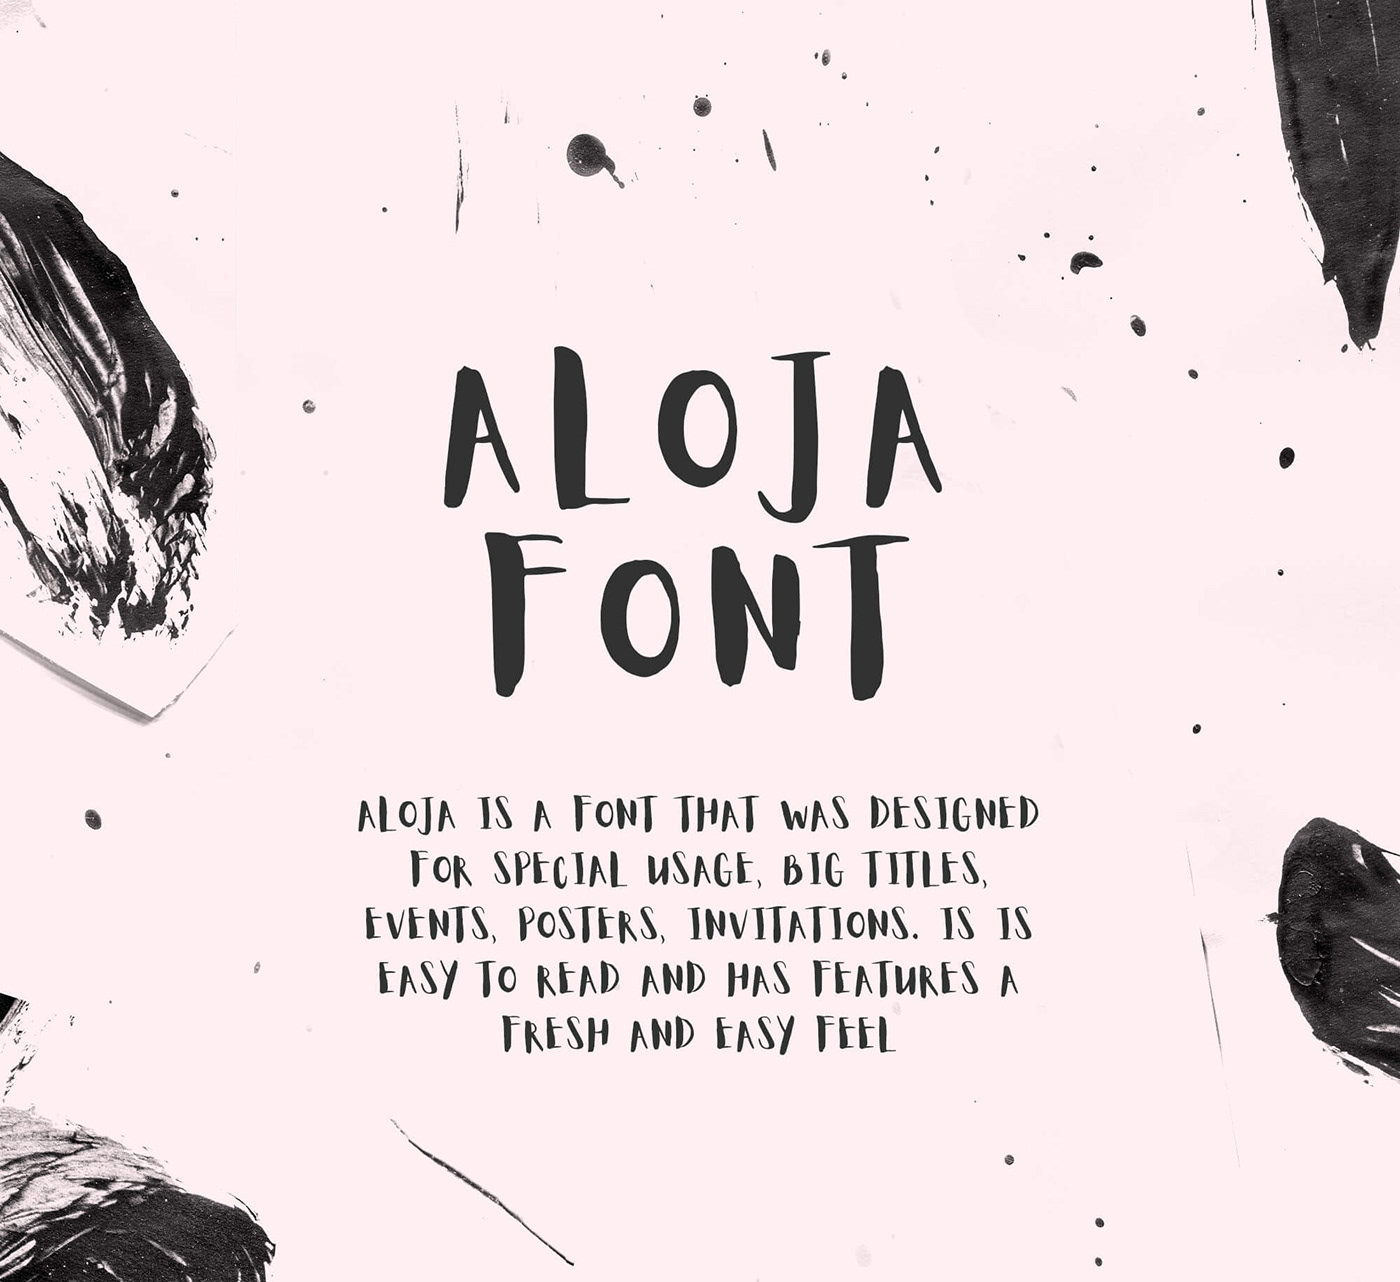 Aloja Handwriting Font Was Drawn By Ieva Mezule And Put Together Krisjanis Mezulis Can Be Used For